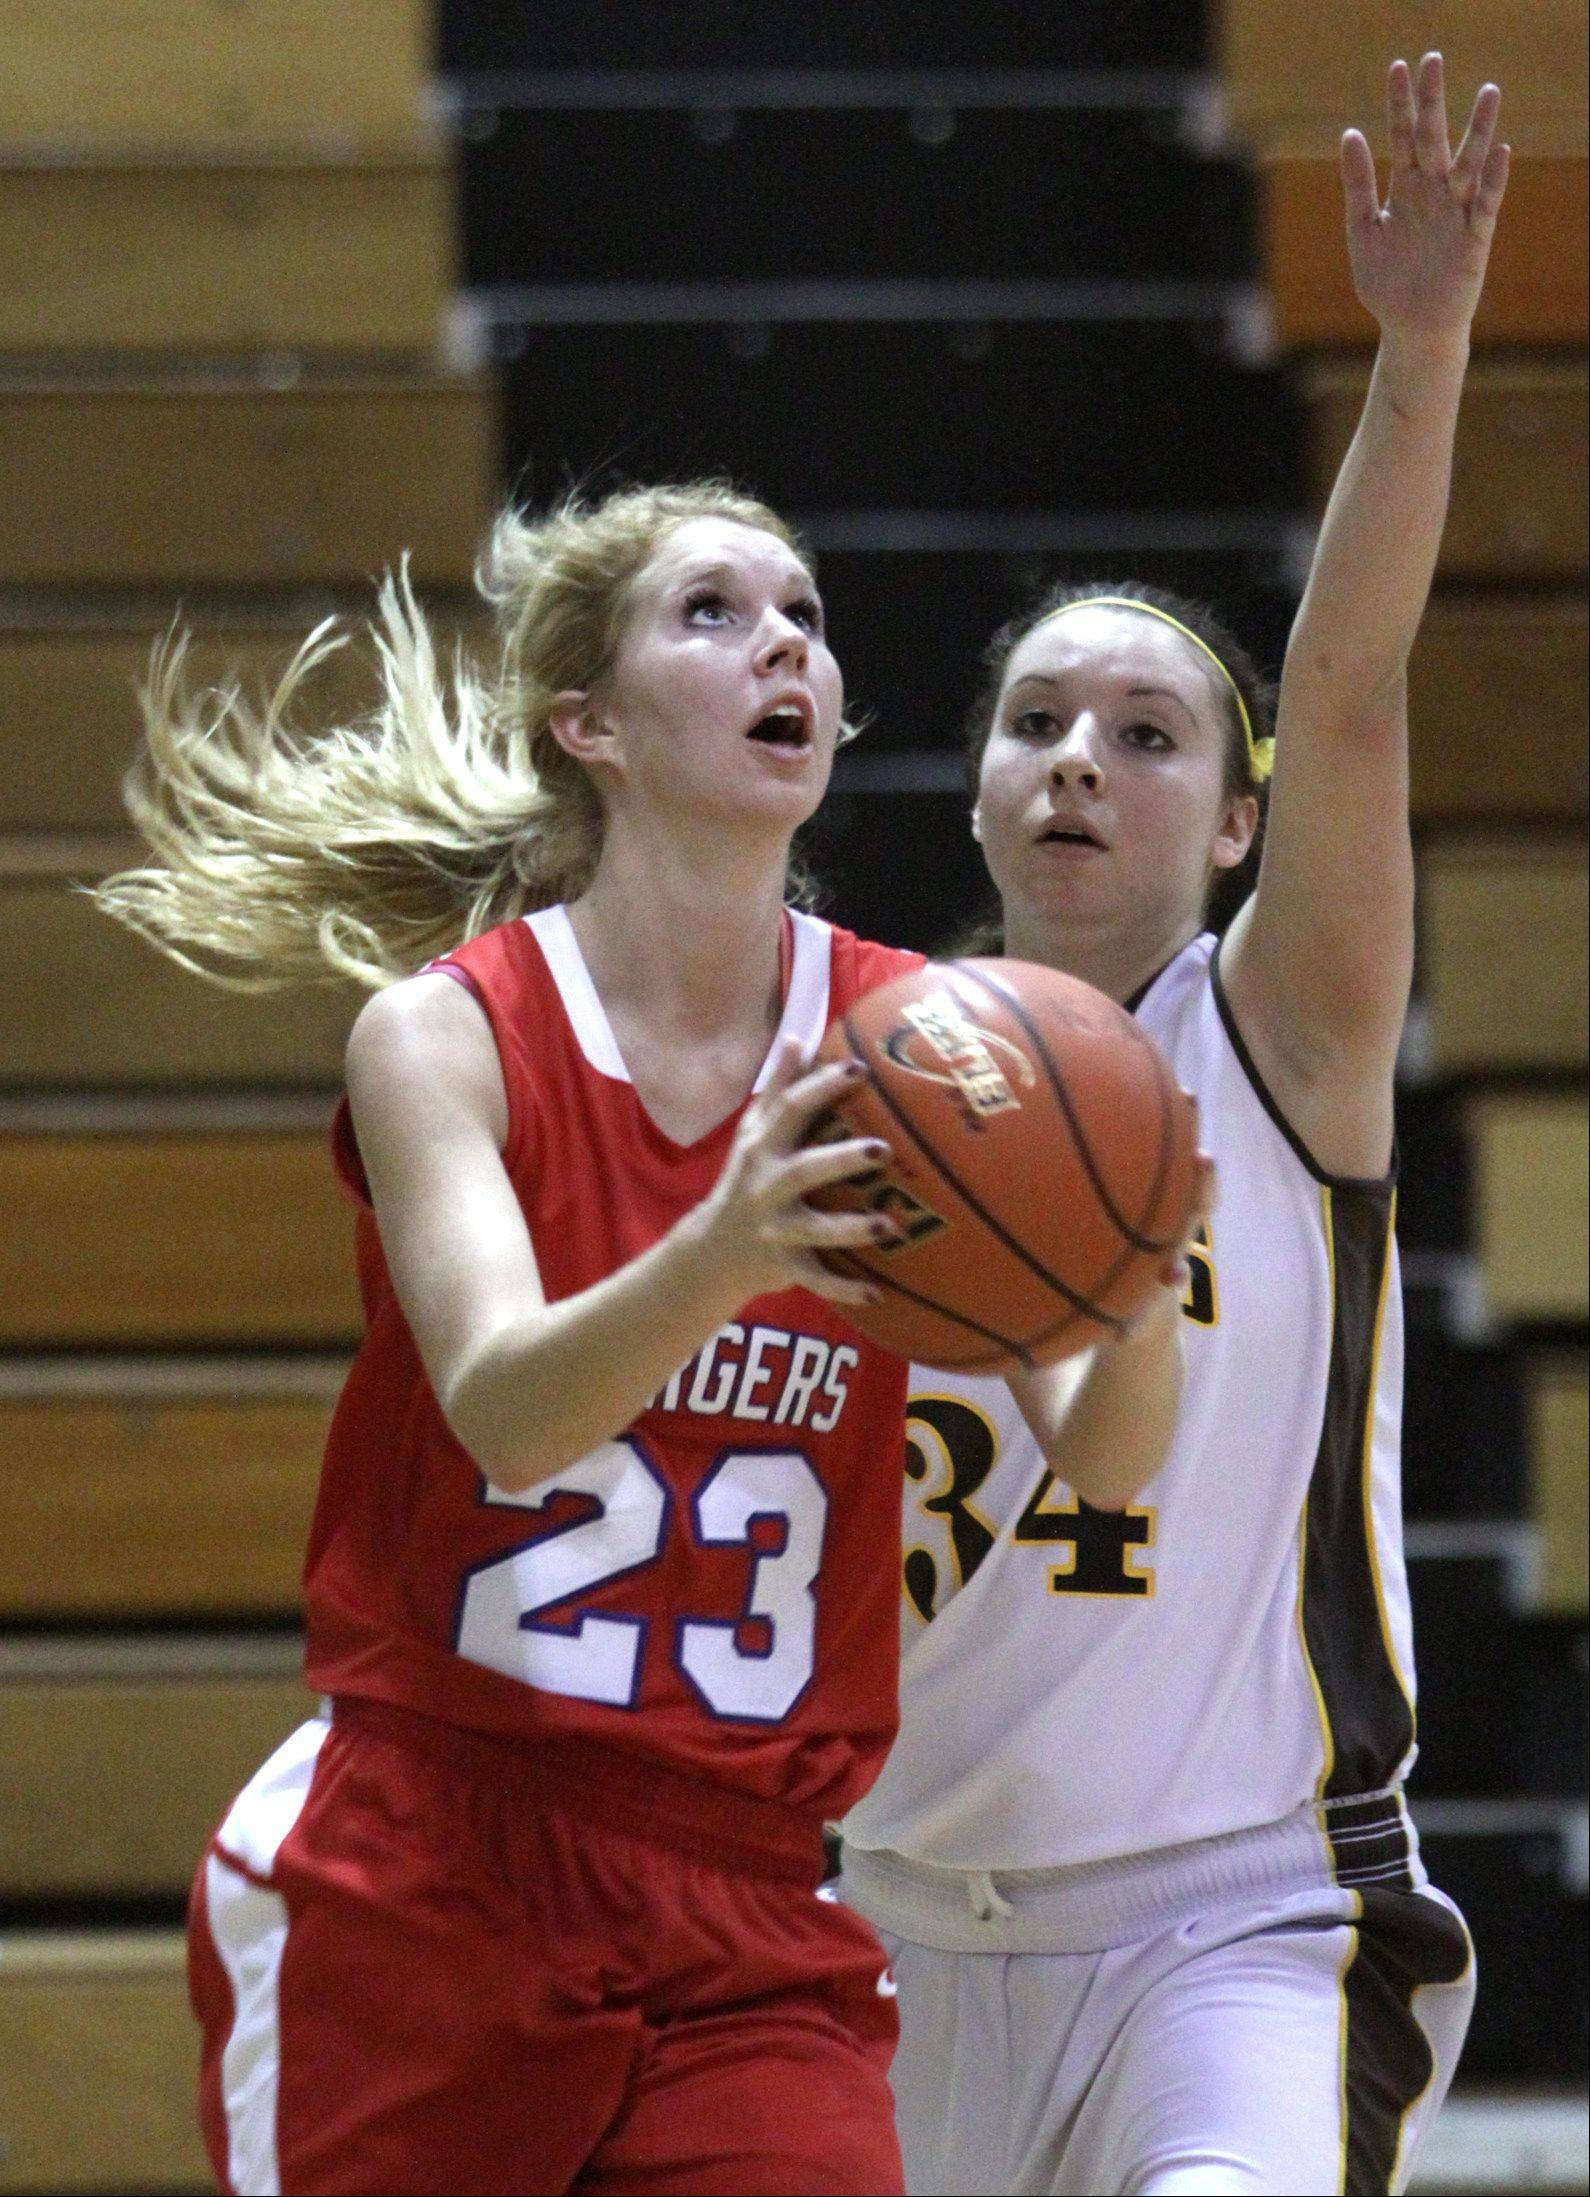 Dundee-Crown's Jillian Weichmann goes to the hoop past Jacobs' Jennifer Barnec.